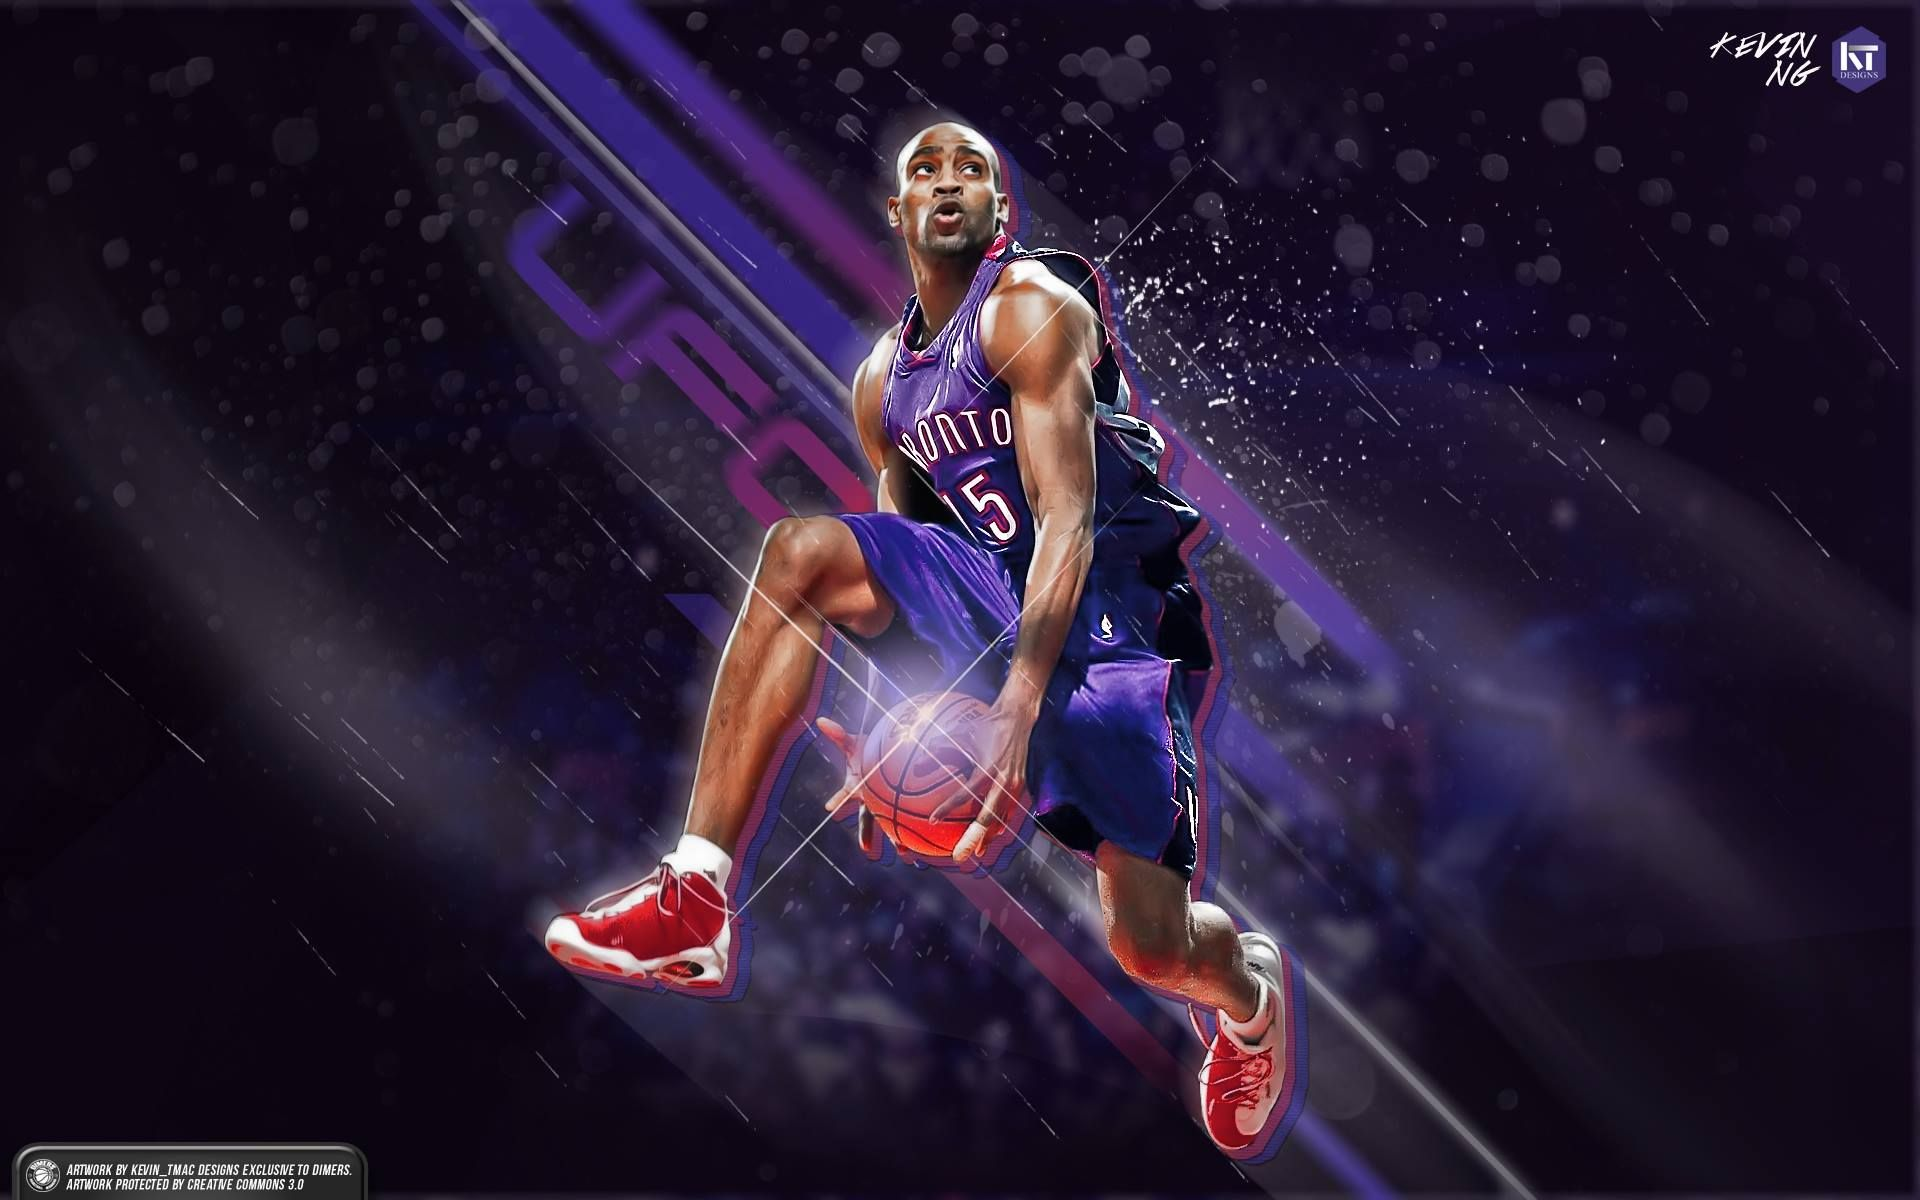 Vince Carter Wallpapers Wallpaper Cave Vince Nba Wallpapers Carters